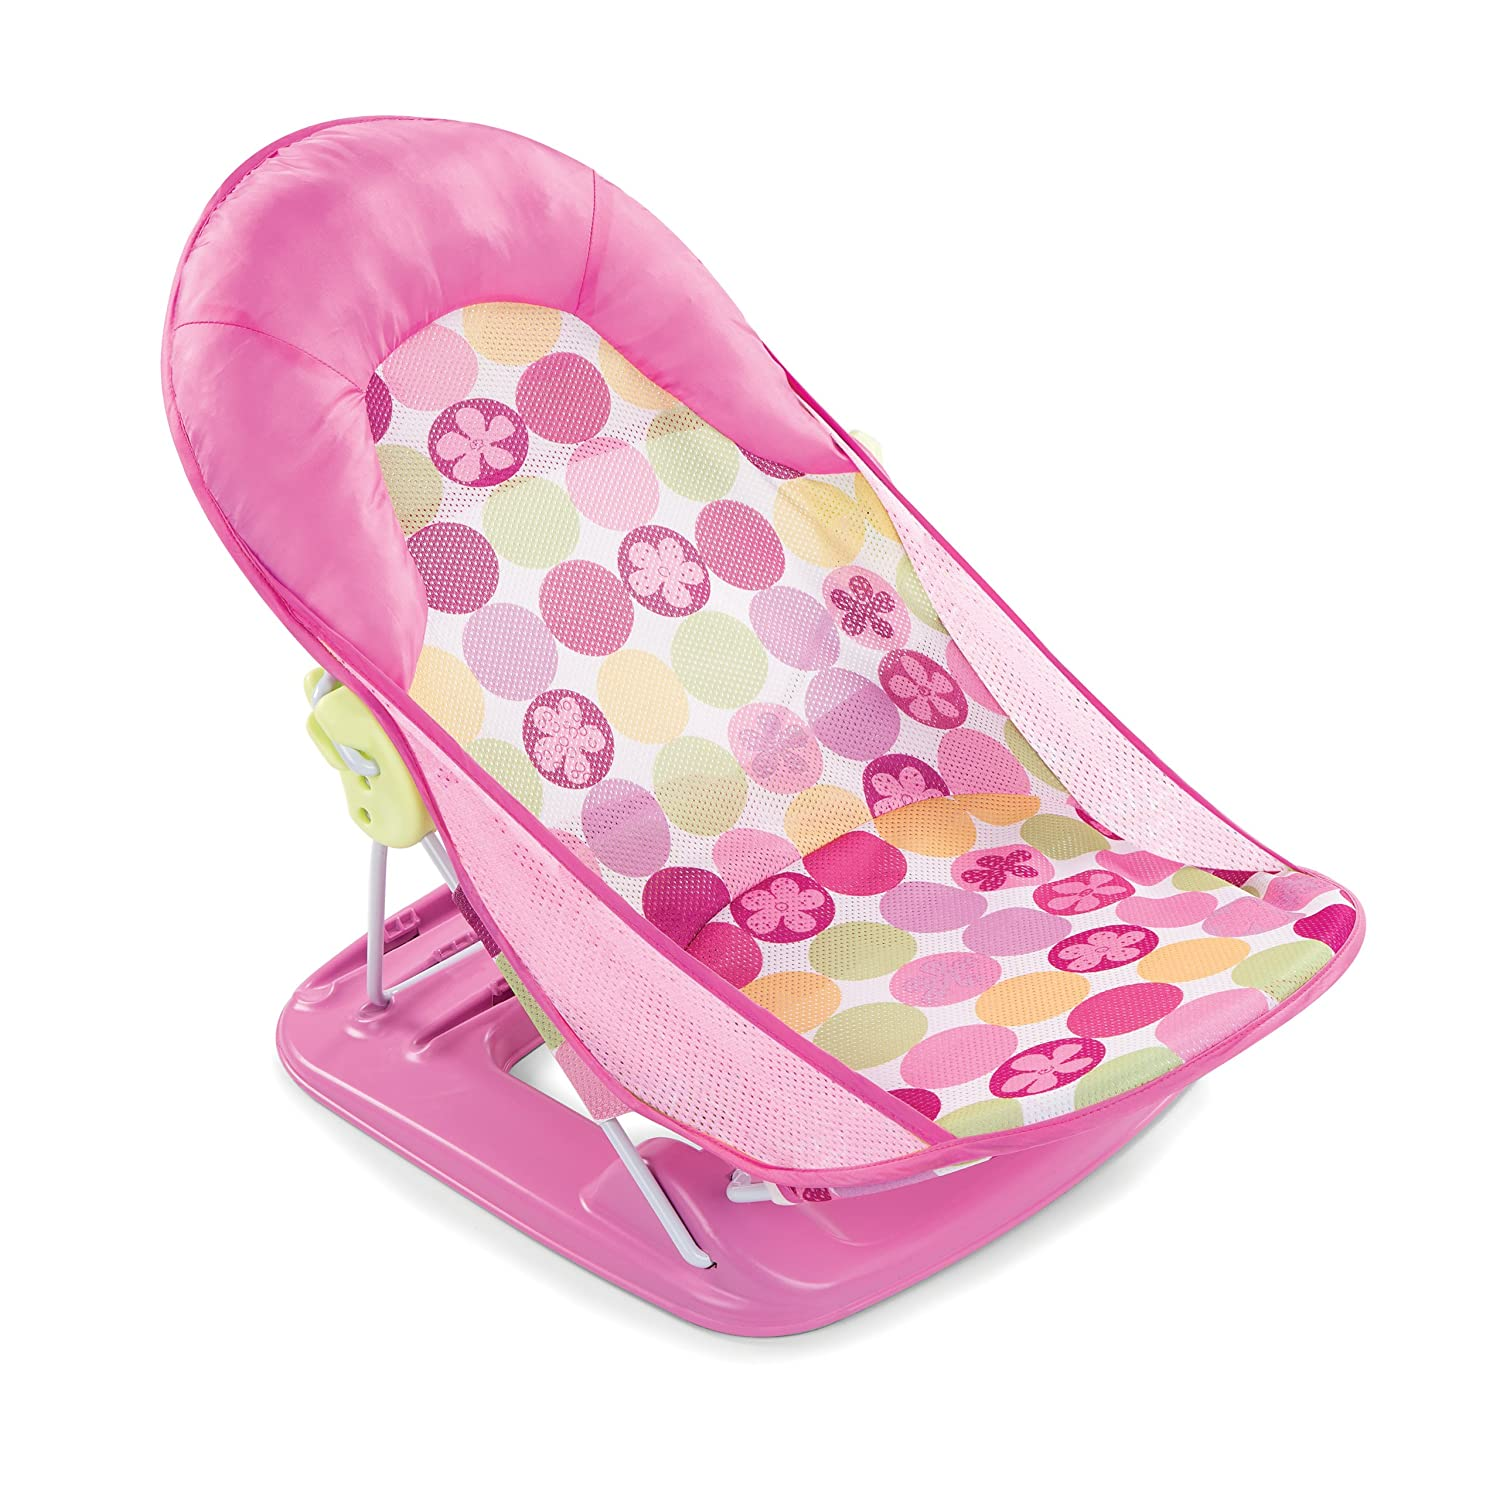 Amazon.com : Summer Infant Deluxe Baby Bather, Pink : Baby Bathing ...